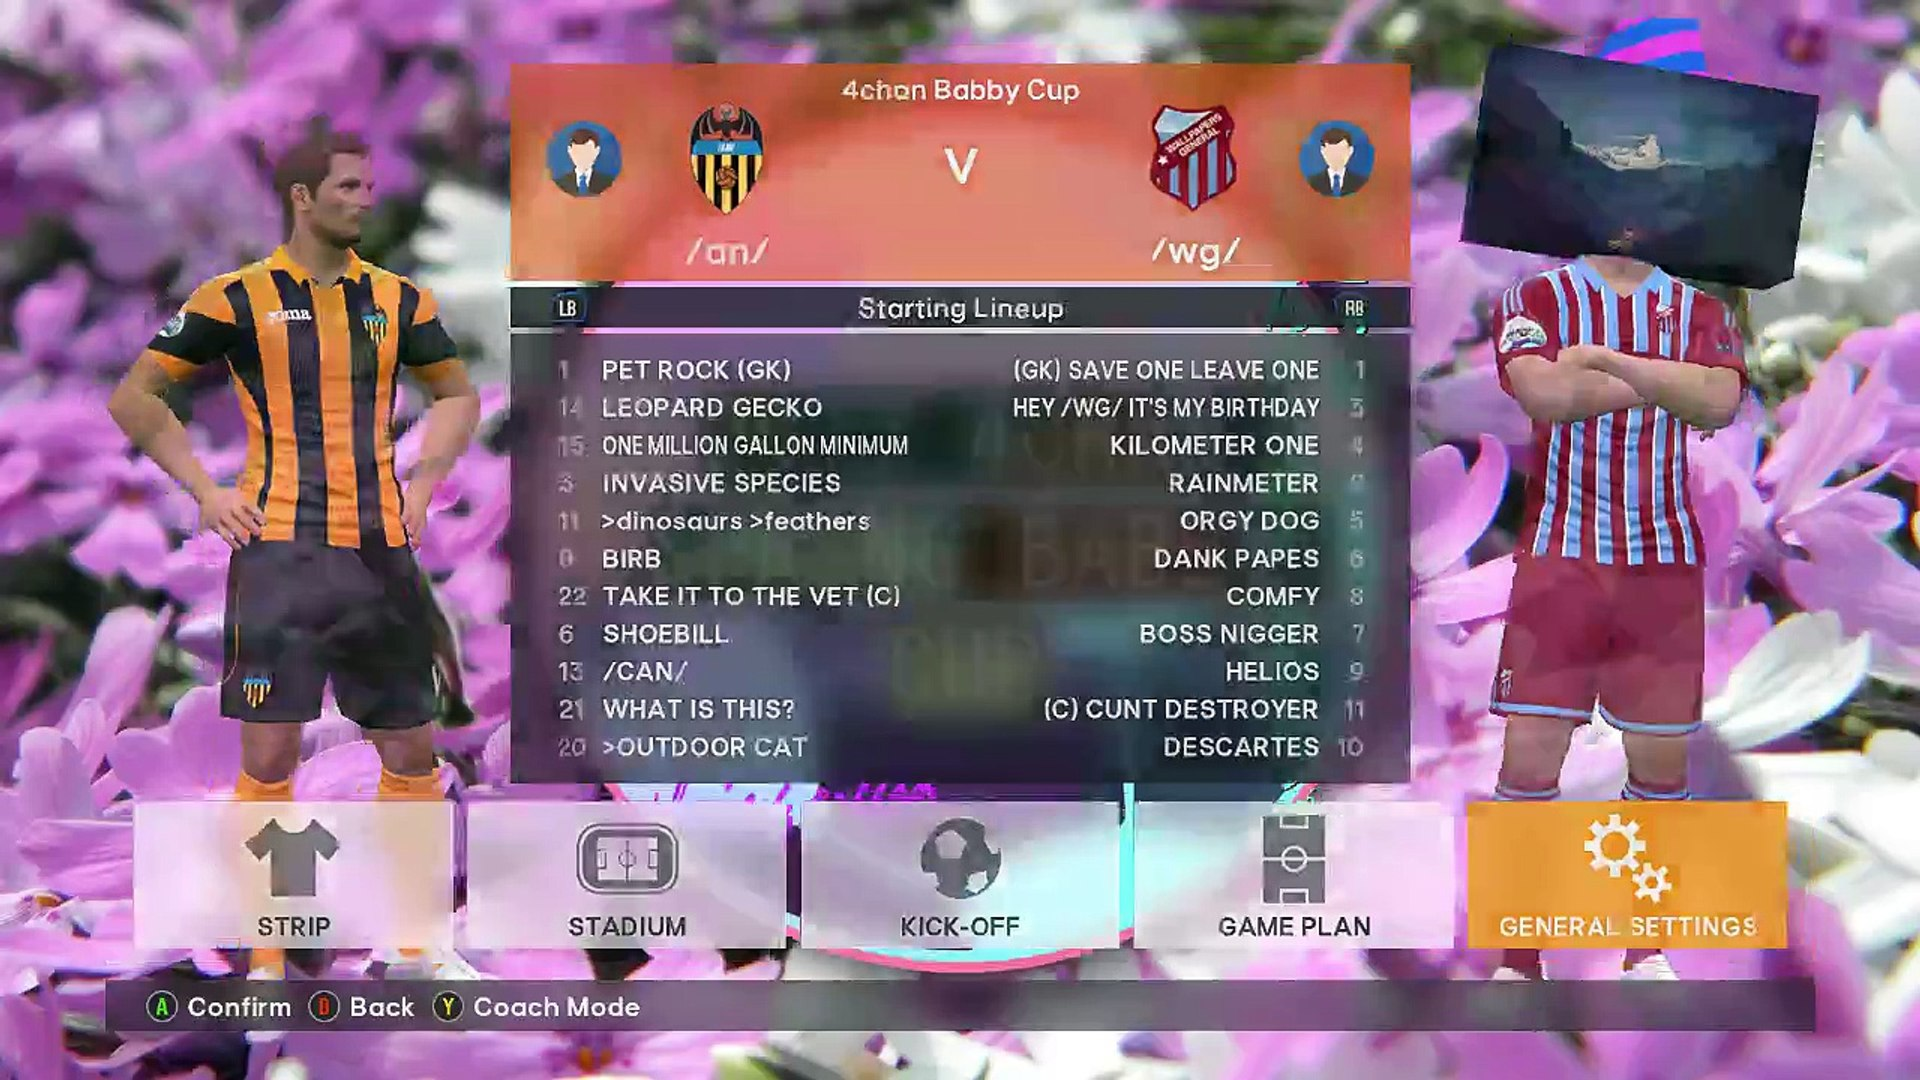 2017 4chan Spring Babby Cup Group F An Vs Wg Part 2 2 Video Dailymotion